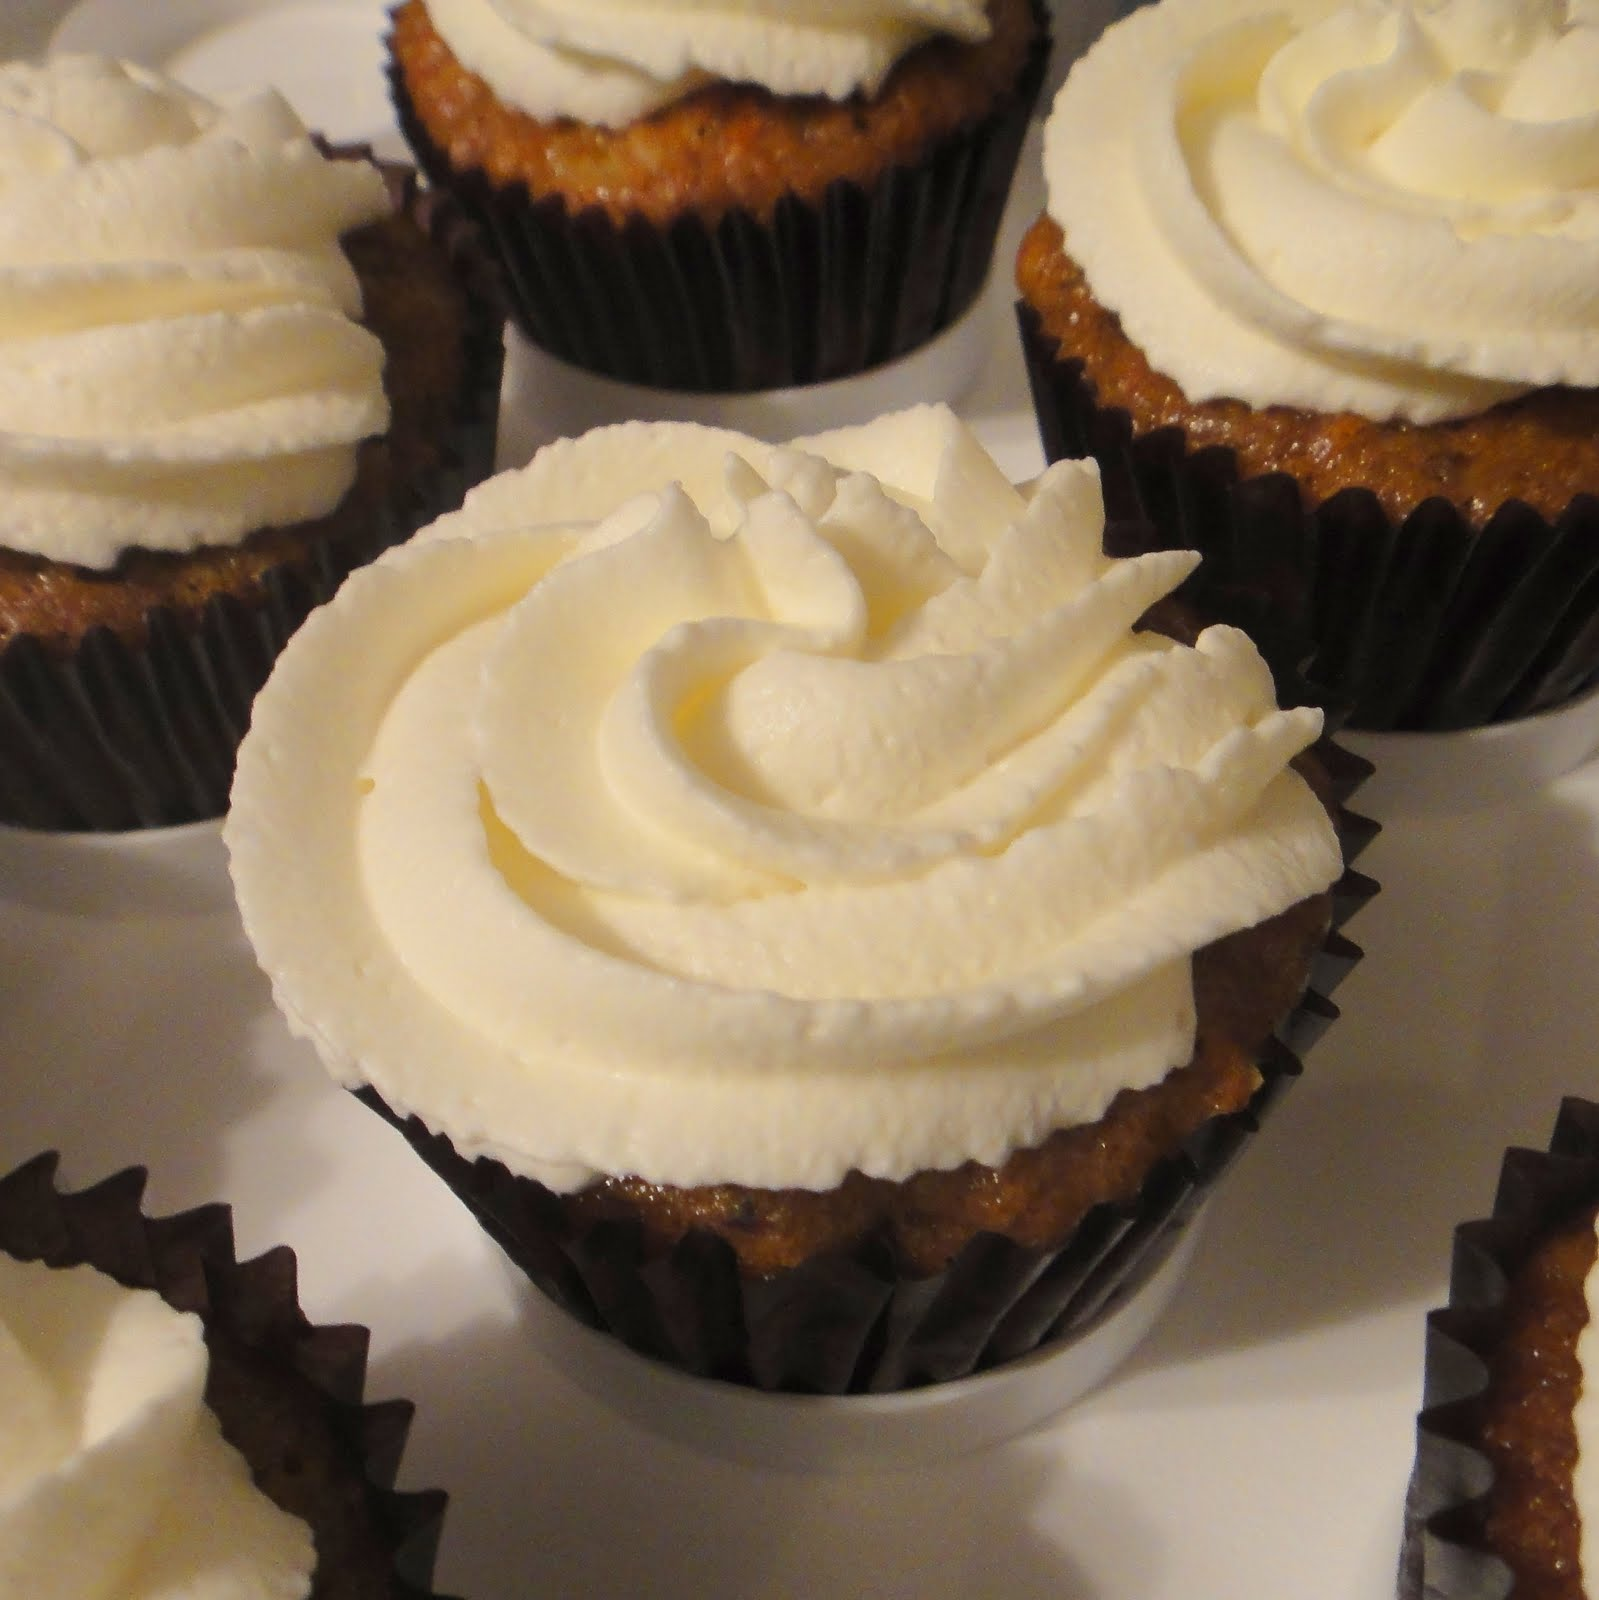 Cook Yu Cook Mi: Whipped Cream Cream Cheese Frosting